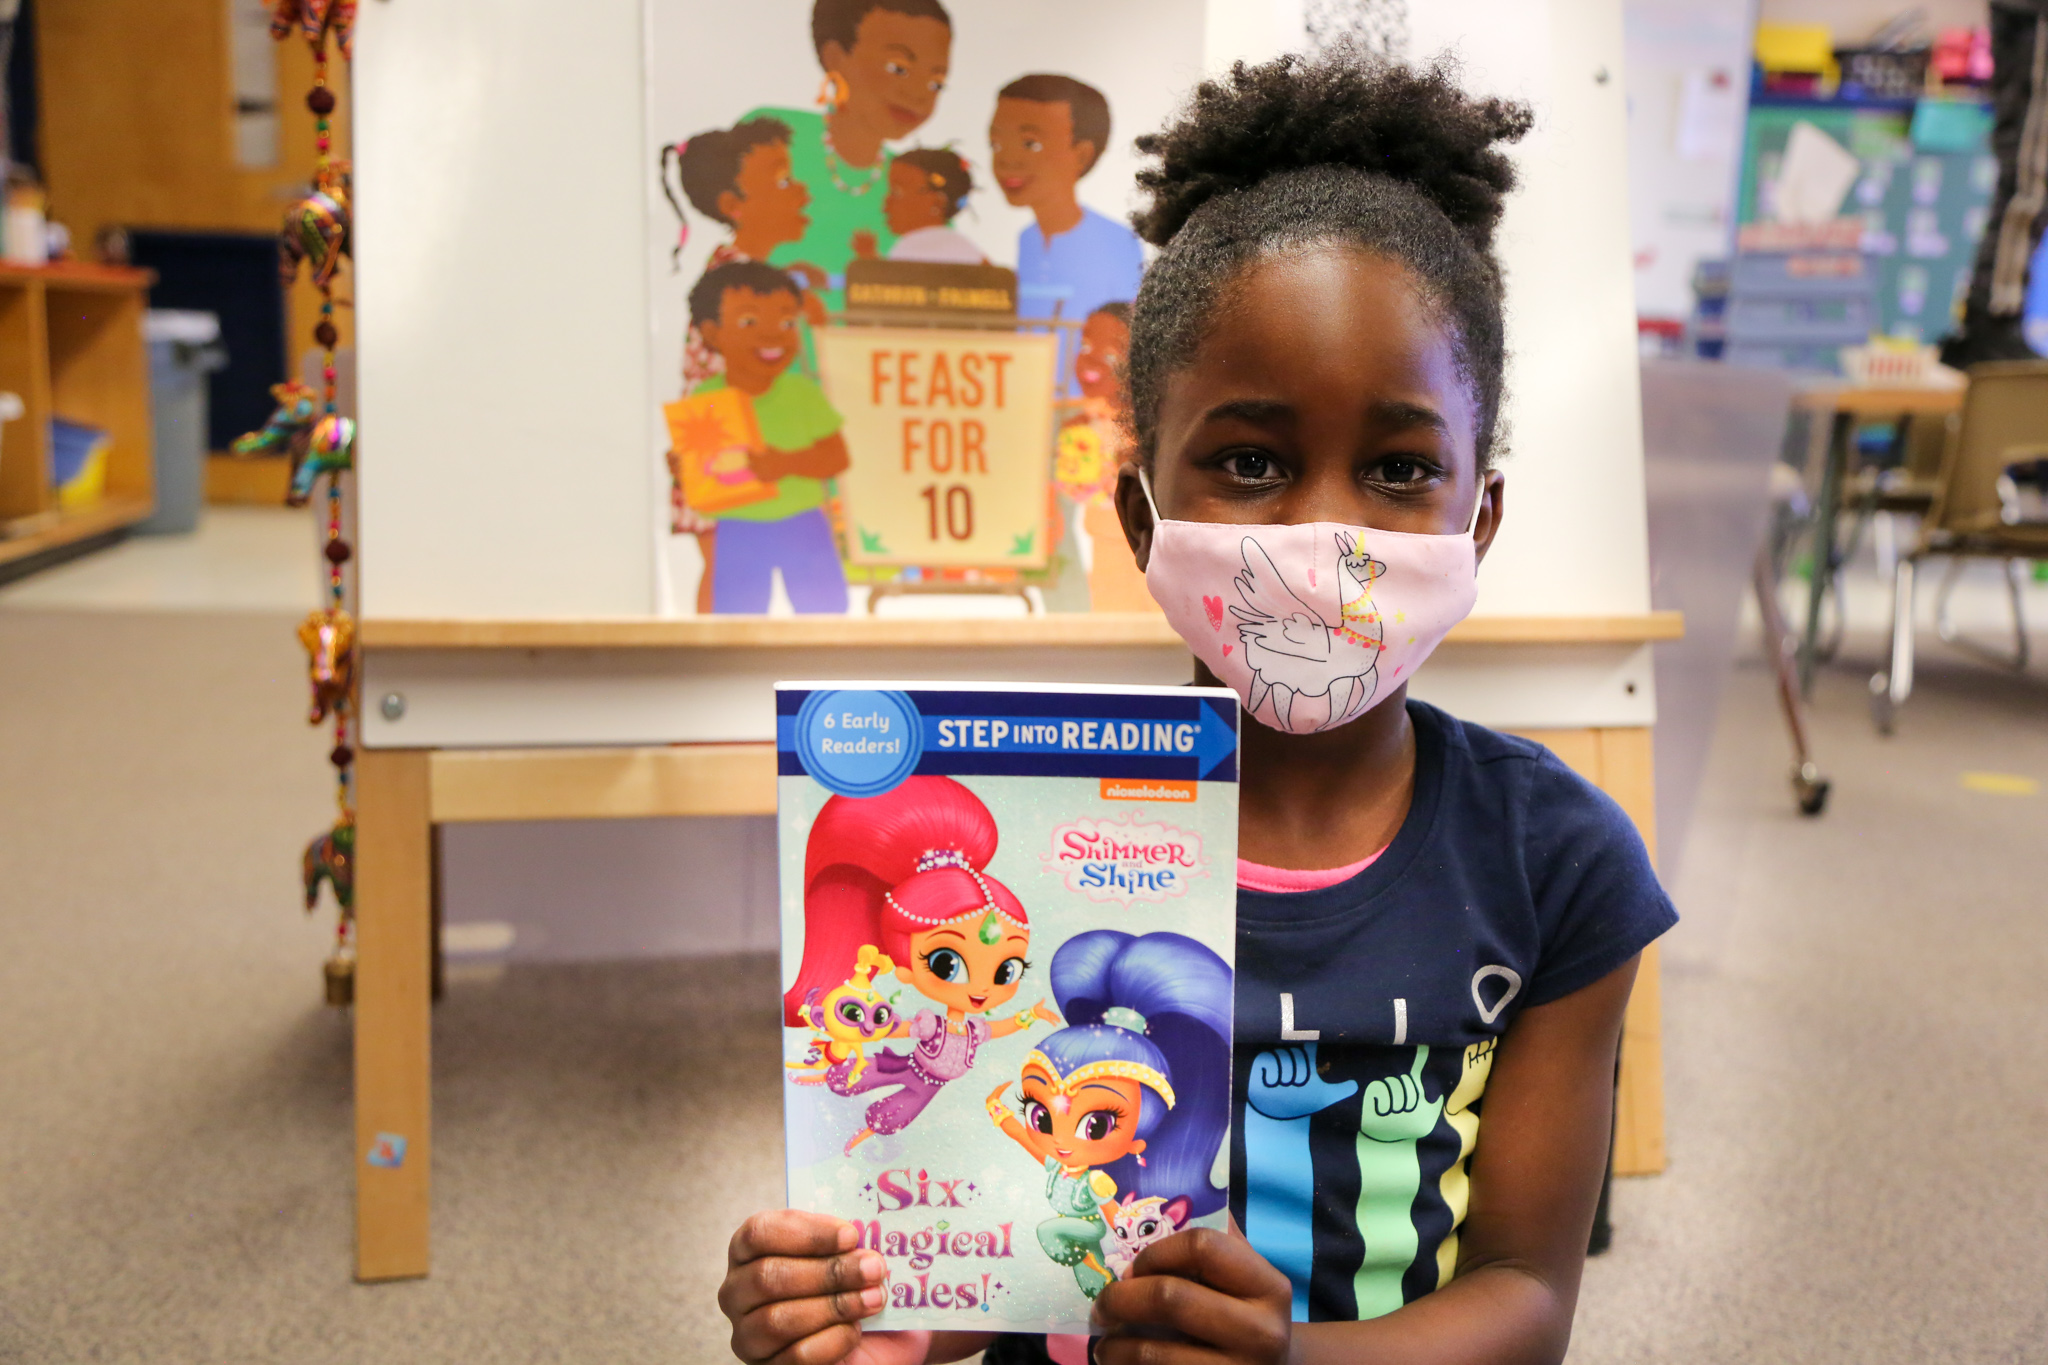 A Bennett Elementary student holds up a book given to her.